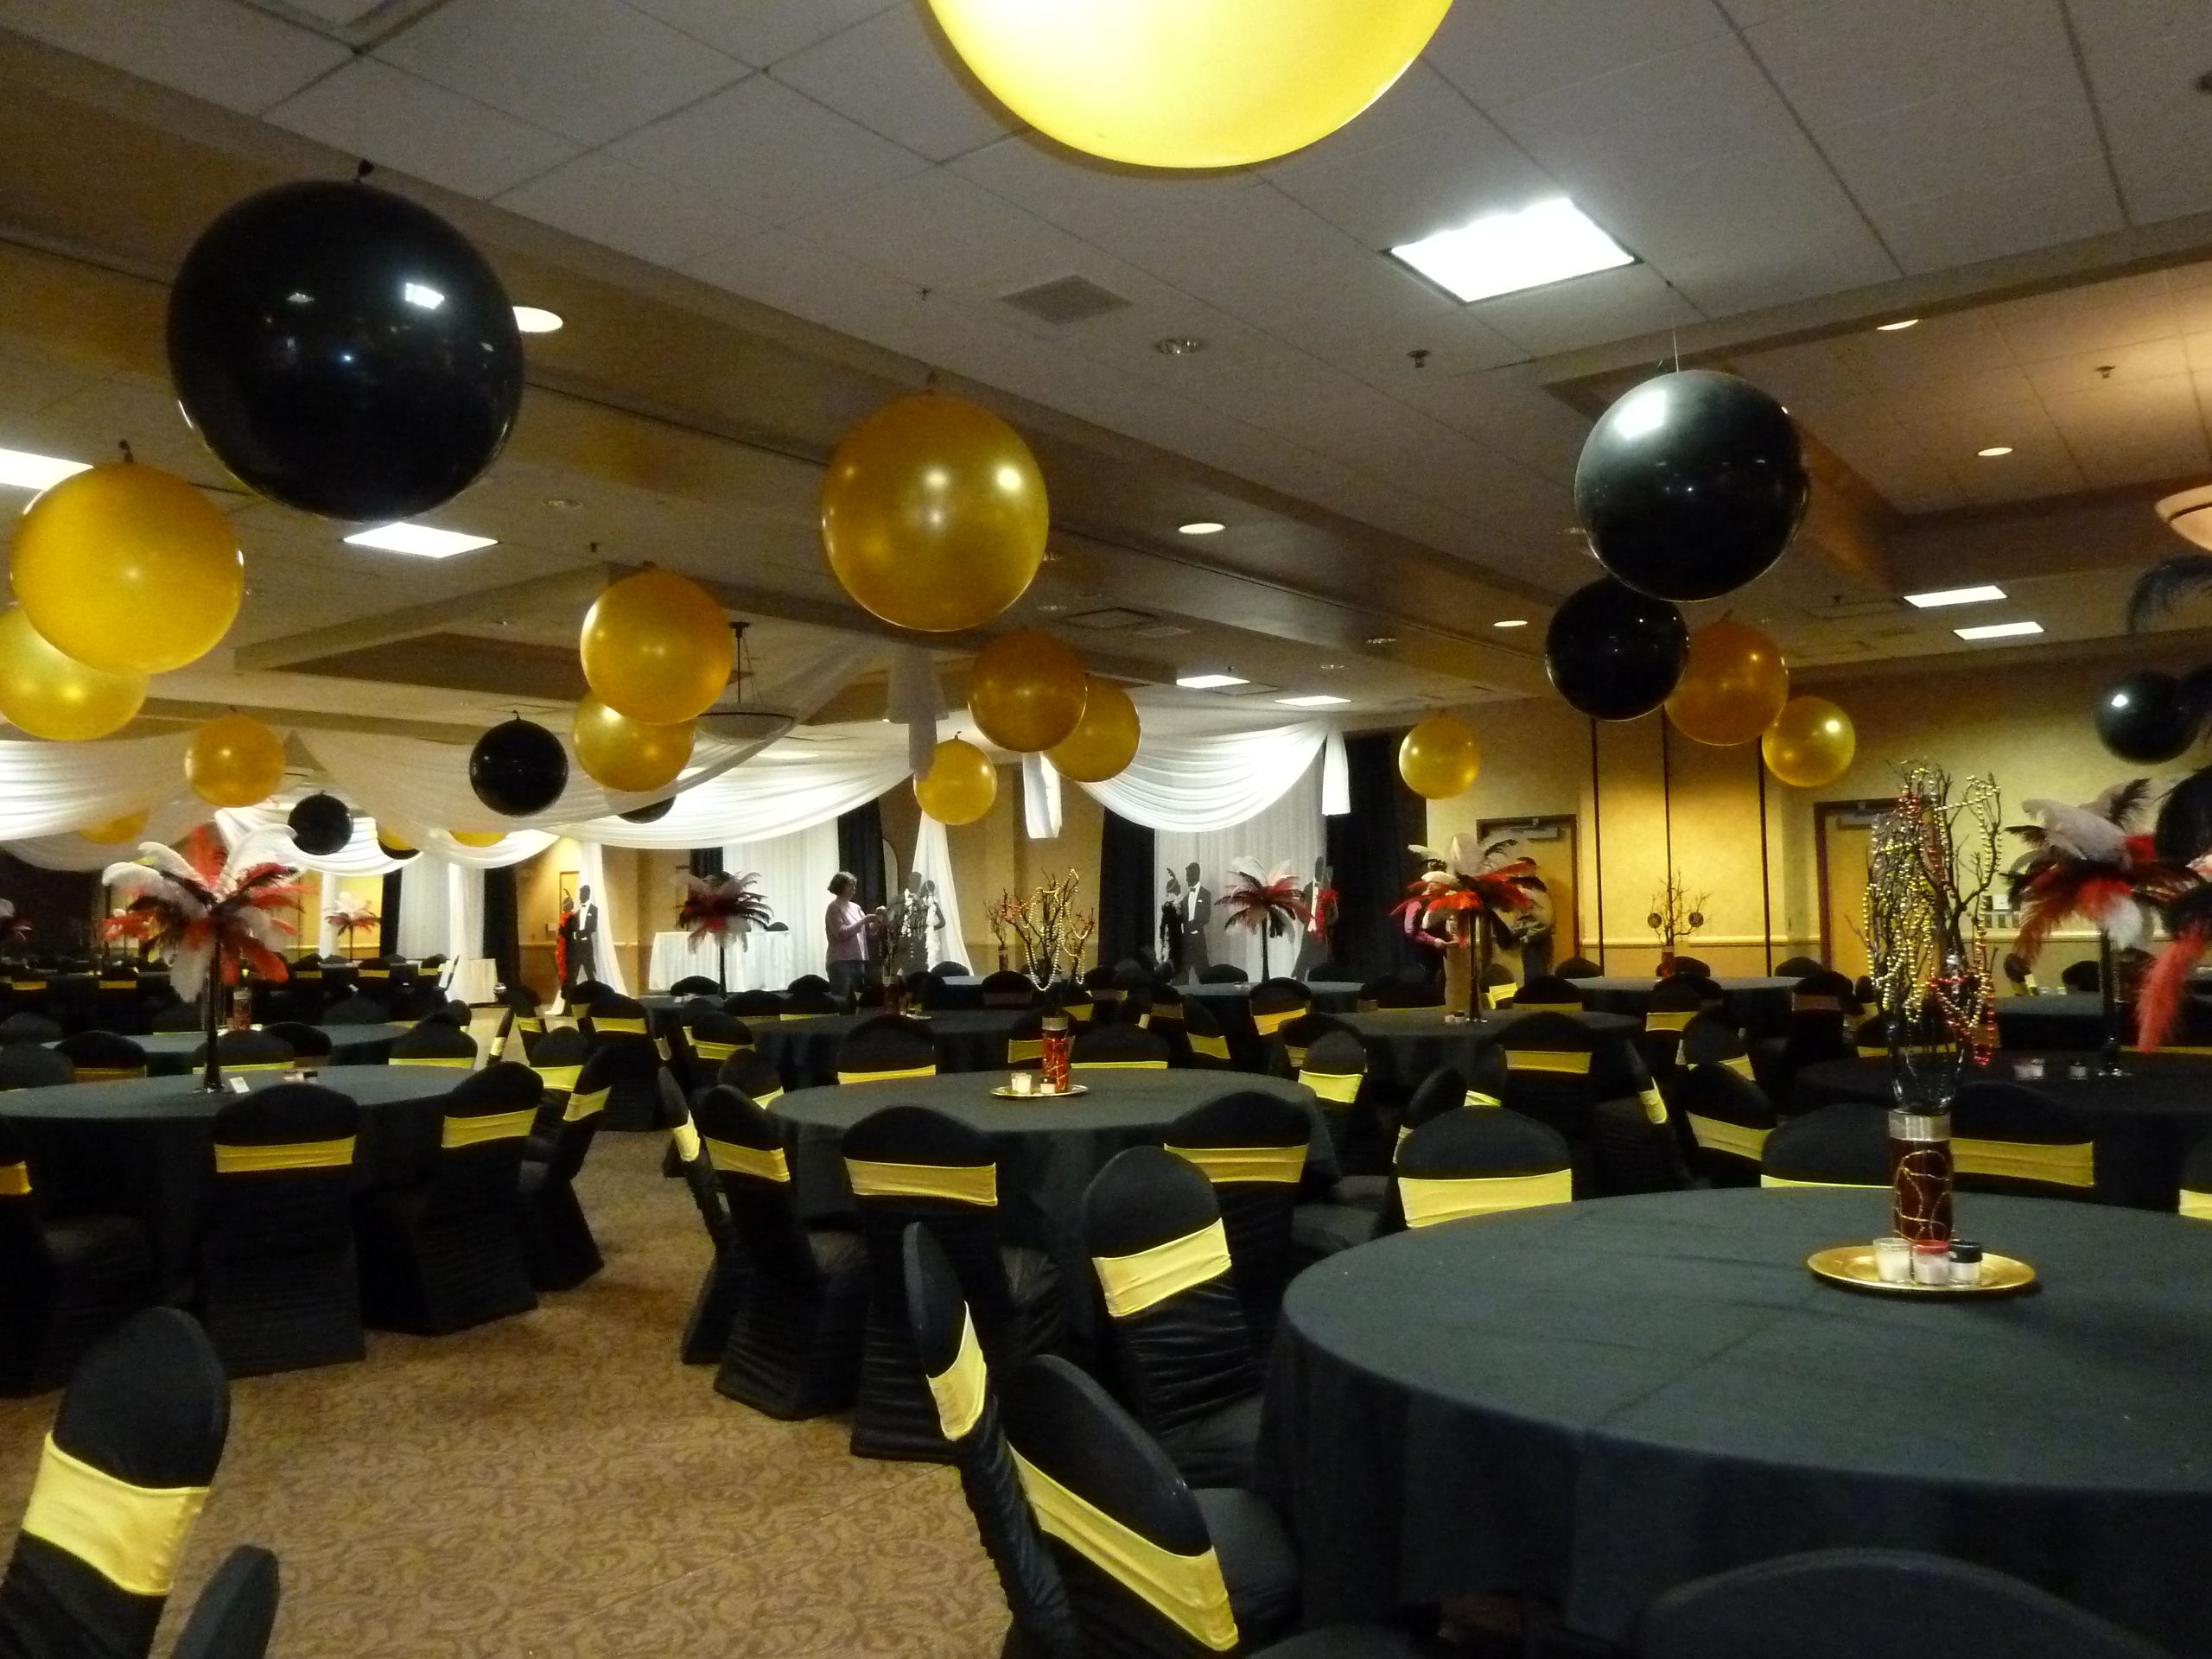 Ceiling Decor Black Gold Balloons The Great Gatsby Ceiling